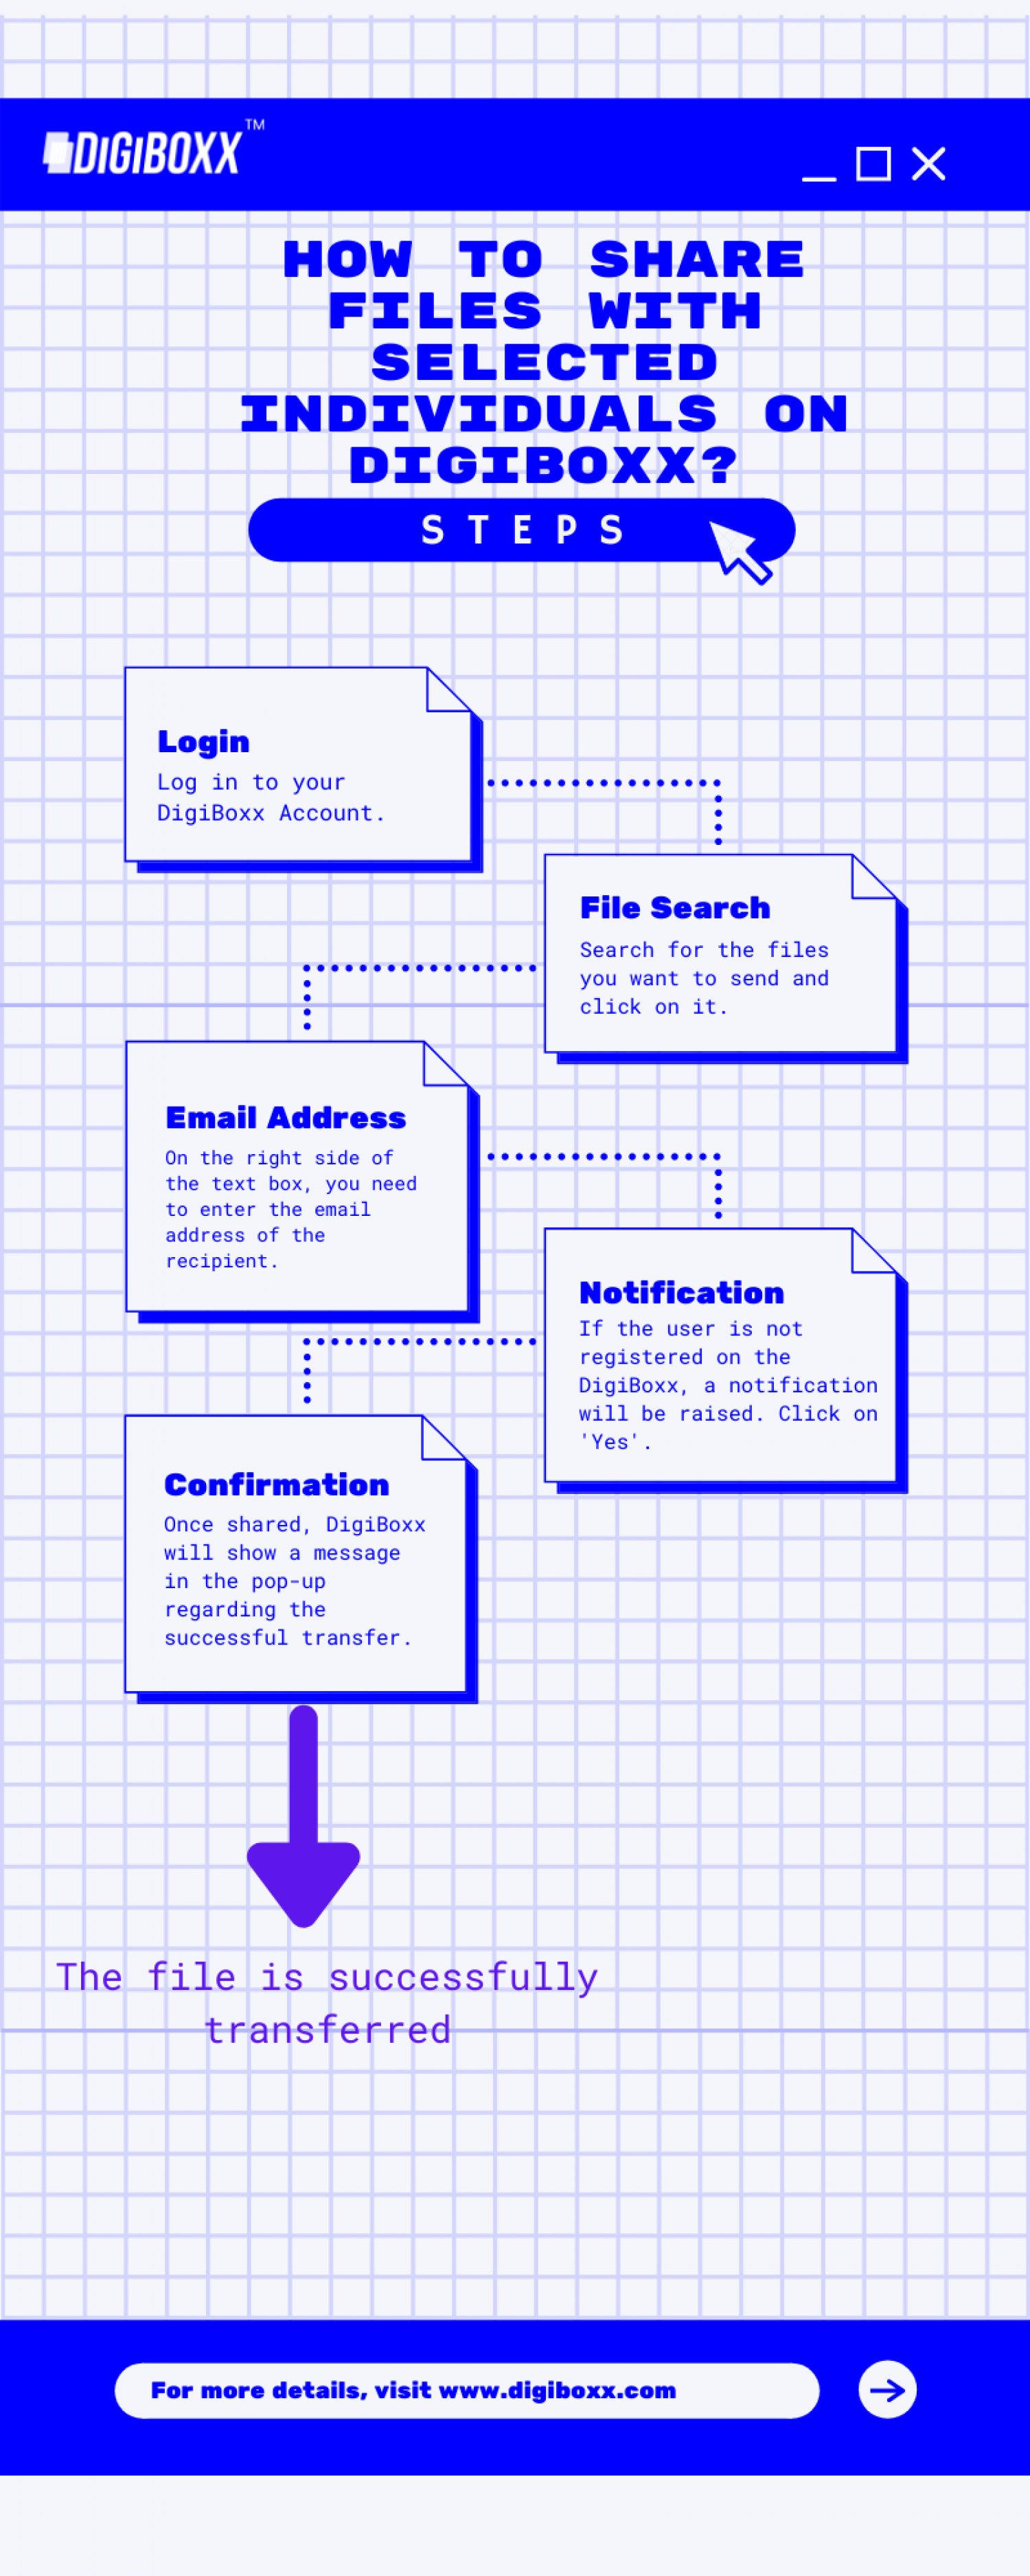 How to share files with individual users Infographic